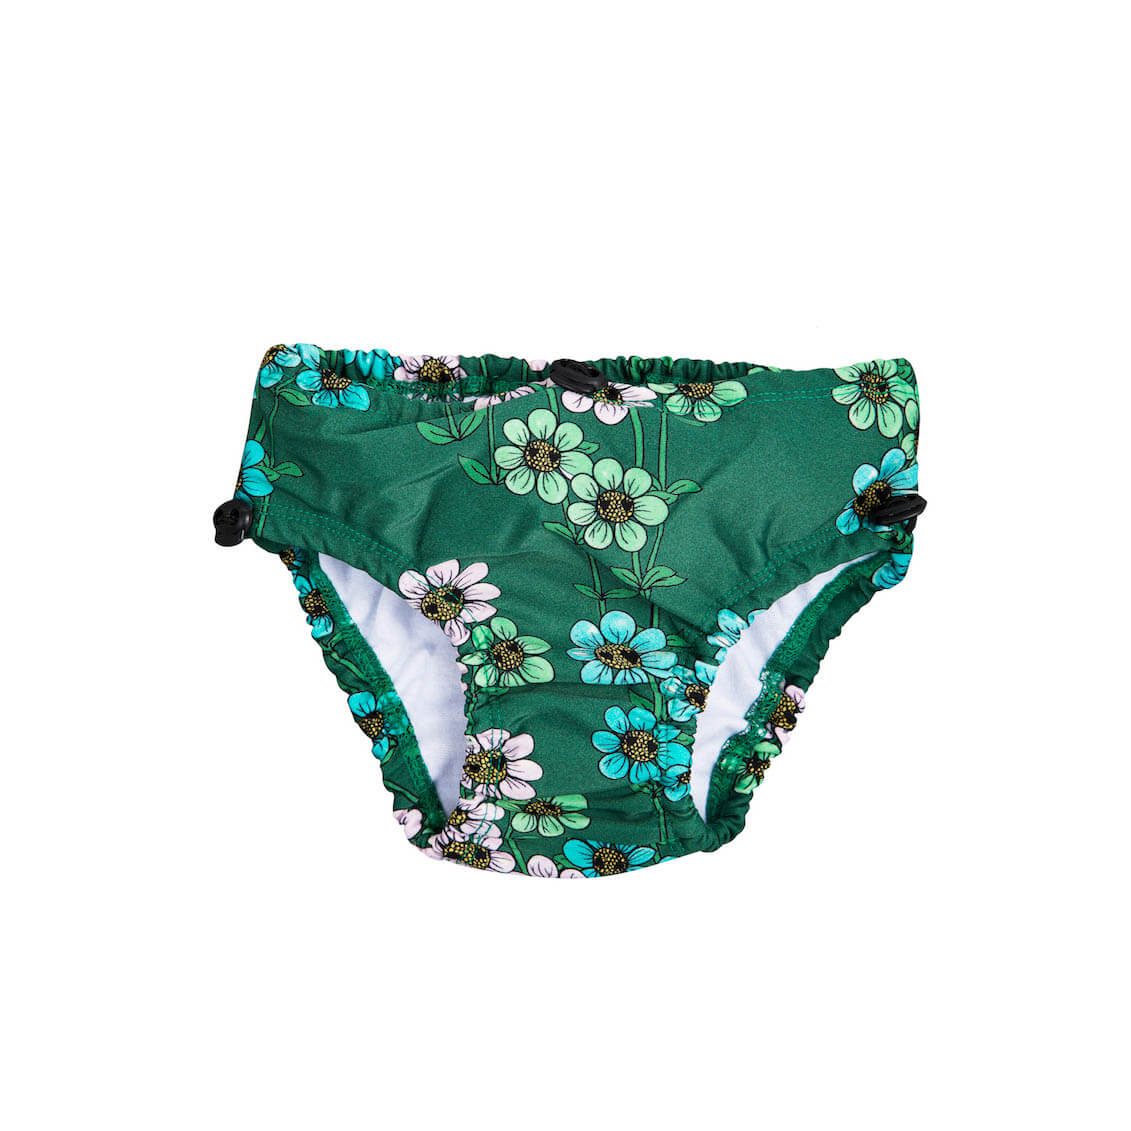 Pepe&Nika PepeandNika Mini Rodini Little Apparel Kids Fashion Kindermode Badehöschen Mädchen girls baby Daisy Swimpants dark green print casual summery sommerlich eco friendly recycled grün Daisy Baby Swimpants Dark Green Sweden Schweden